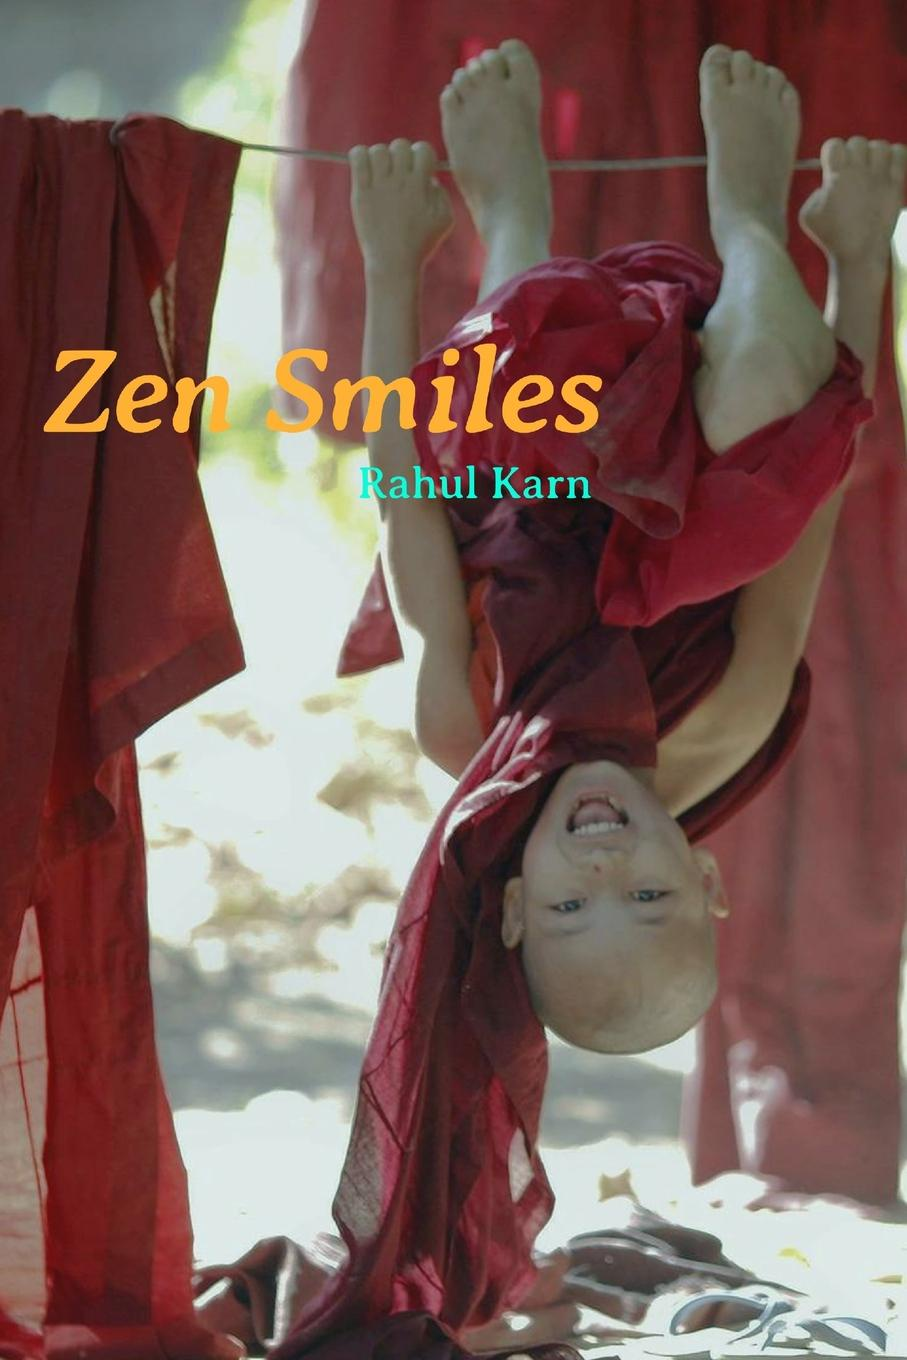 Rahul Karn Zen Smiles. A Collection of 50 Humorous Stories